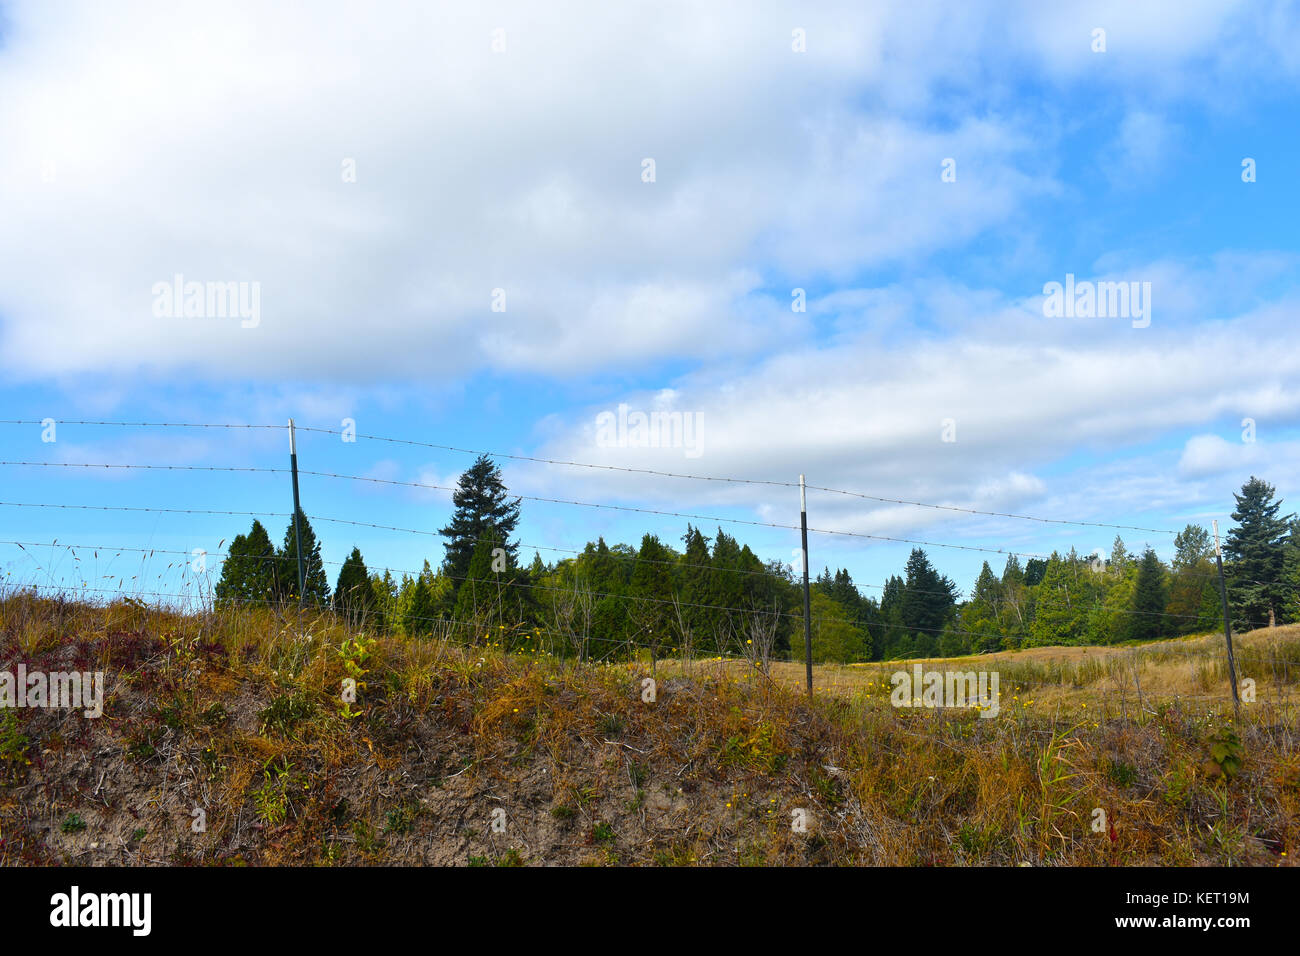 Beautiful country scene with fence on small hill and sunlit evergreens in the background - Stock Image